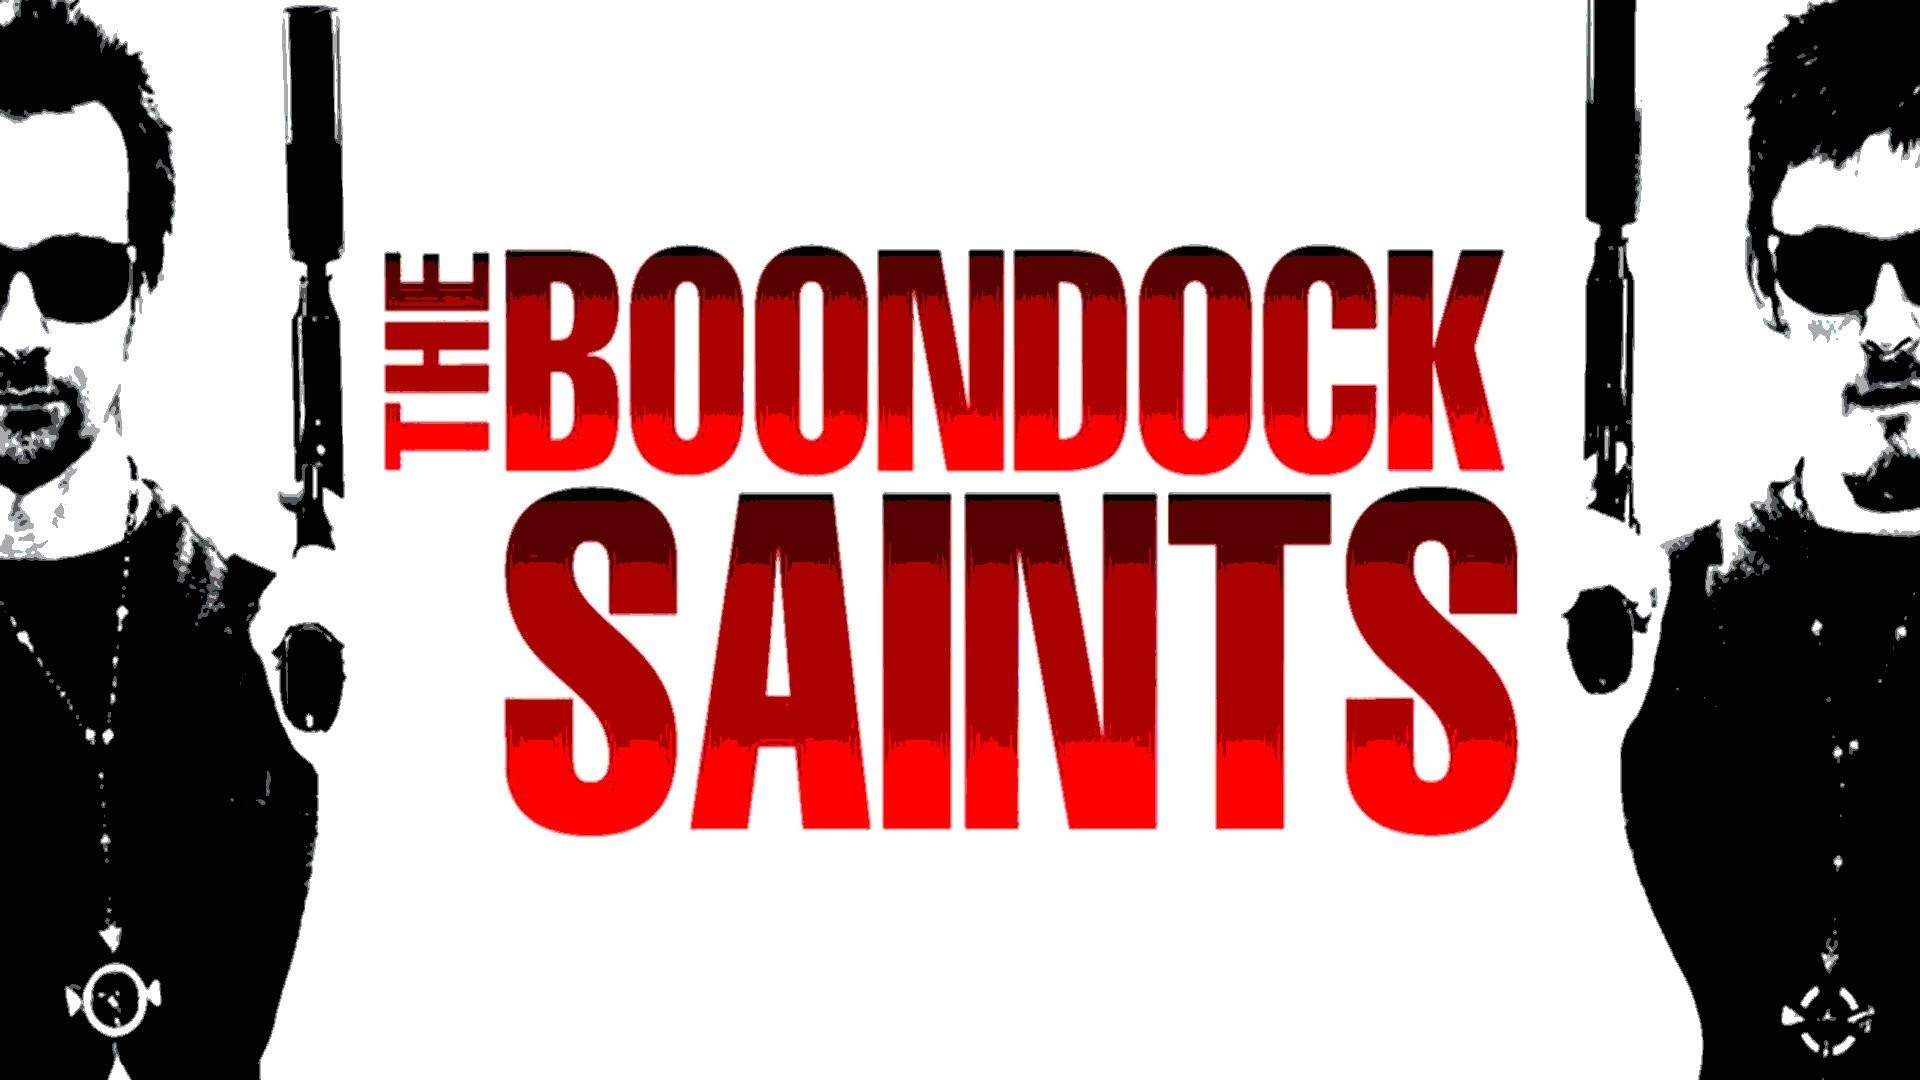 The Boondock Saints HD Wallpapers Backgrounds Wallpaper Boondock Saints Wallpapers  Wallpapers)